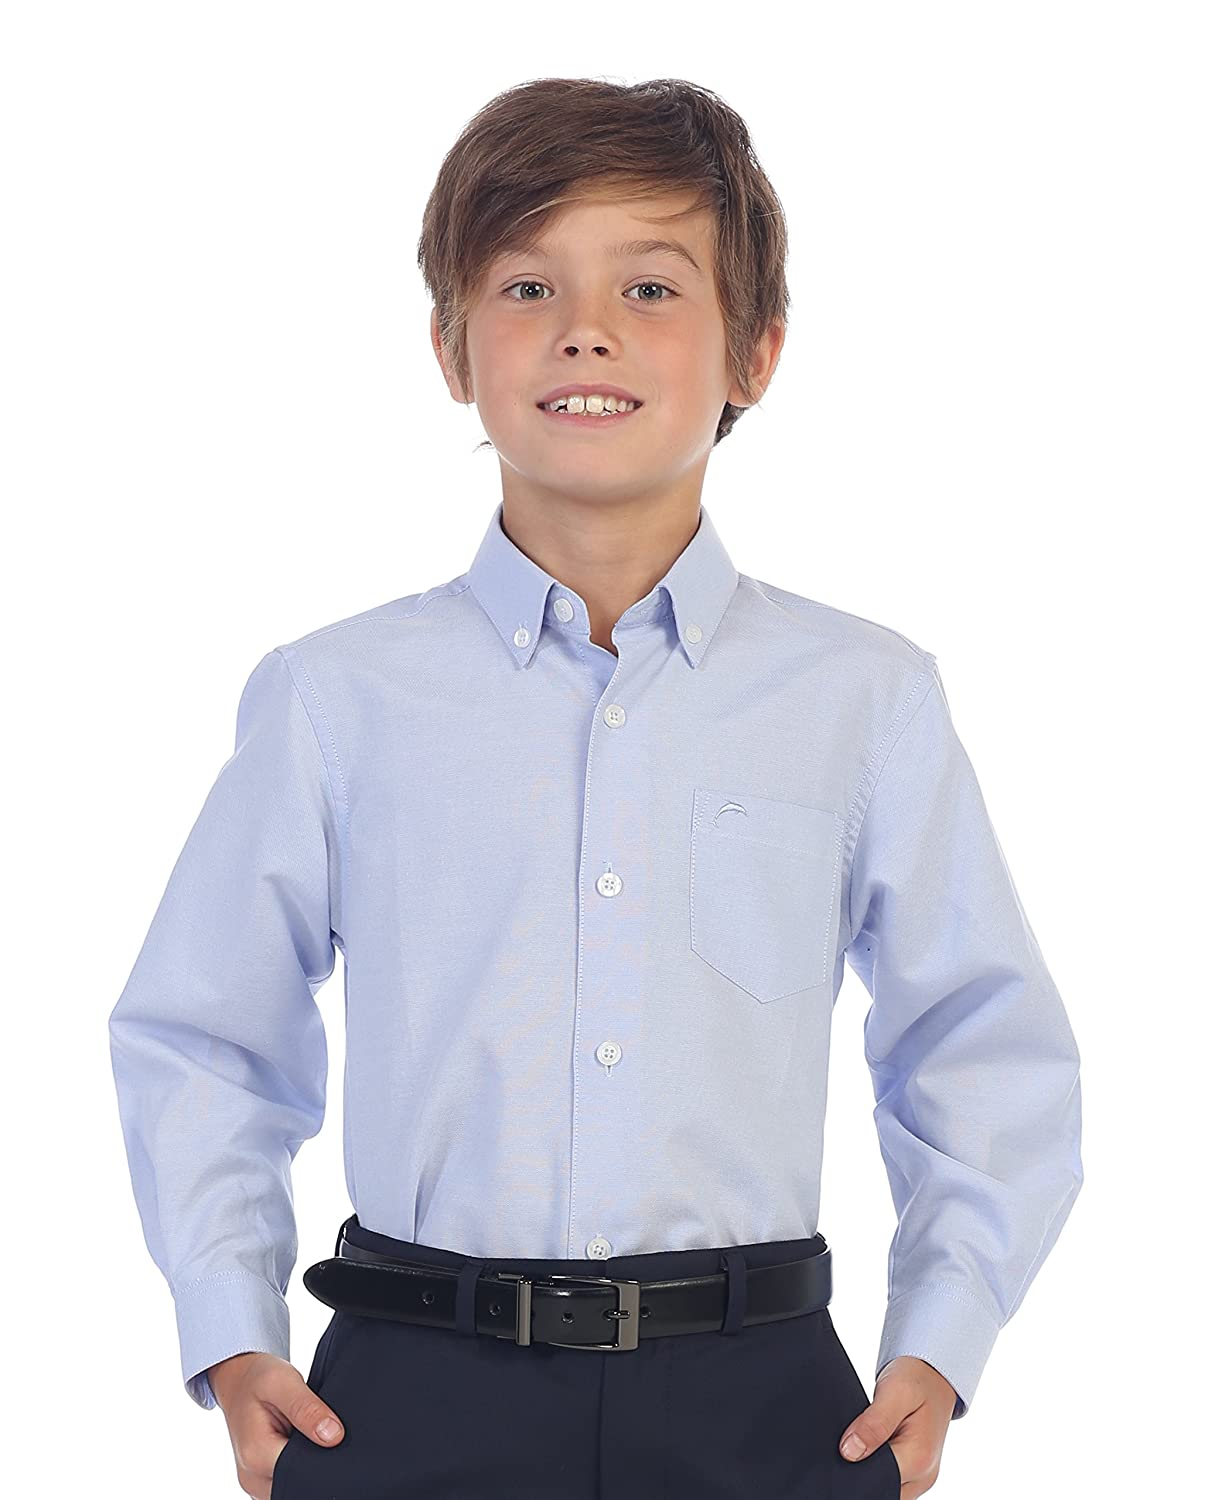 Gioberti Boy's Oxford Long Sleeve Dress Shirt China DSX-85